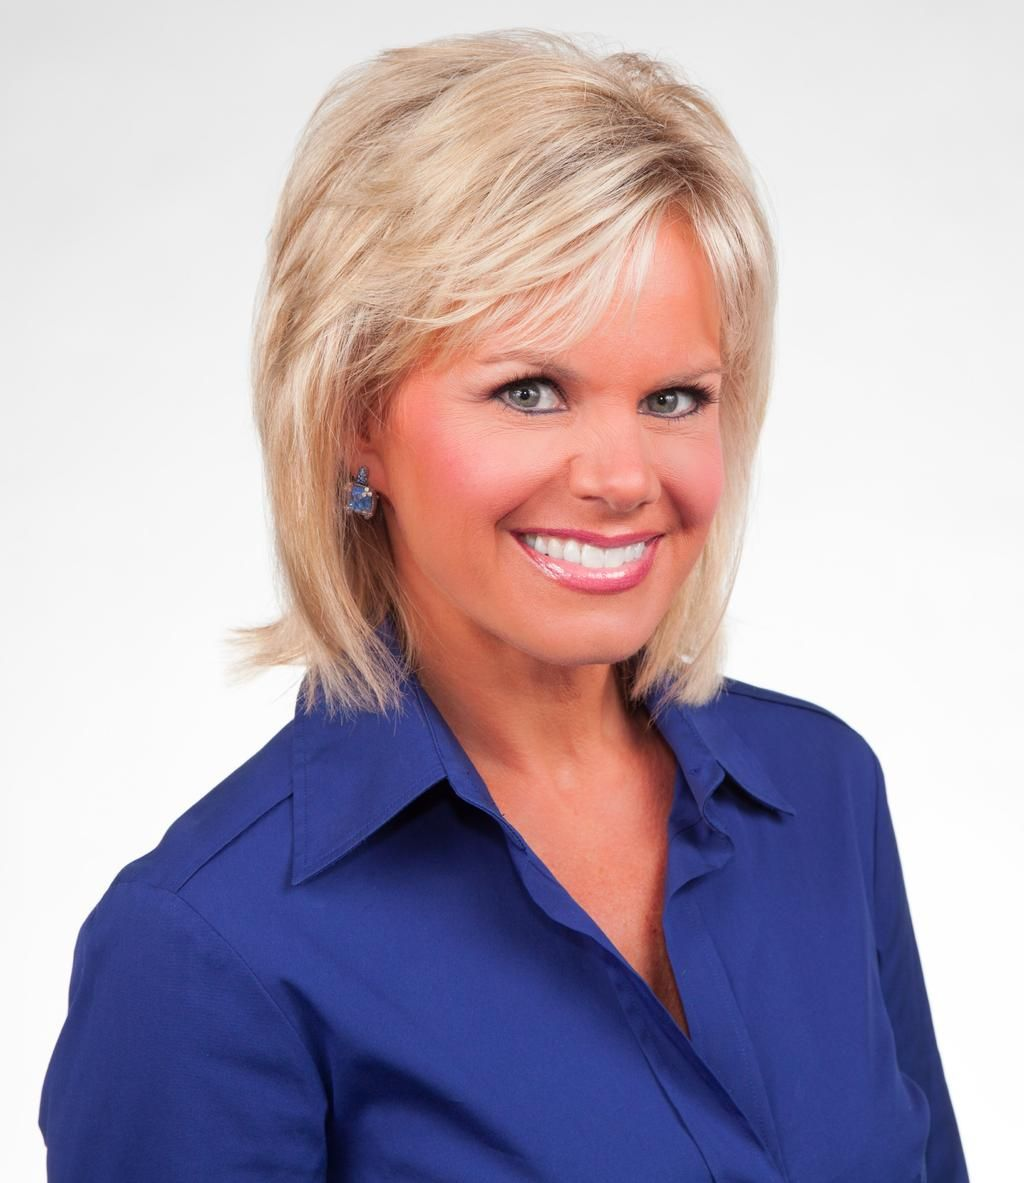 gretchen carlson   hairstyles to try   fox news anchors